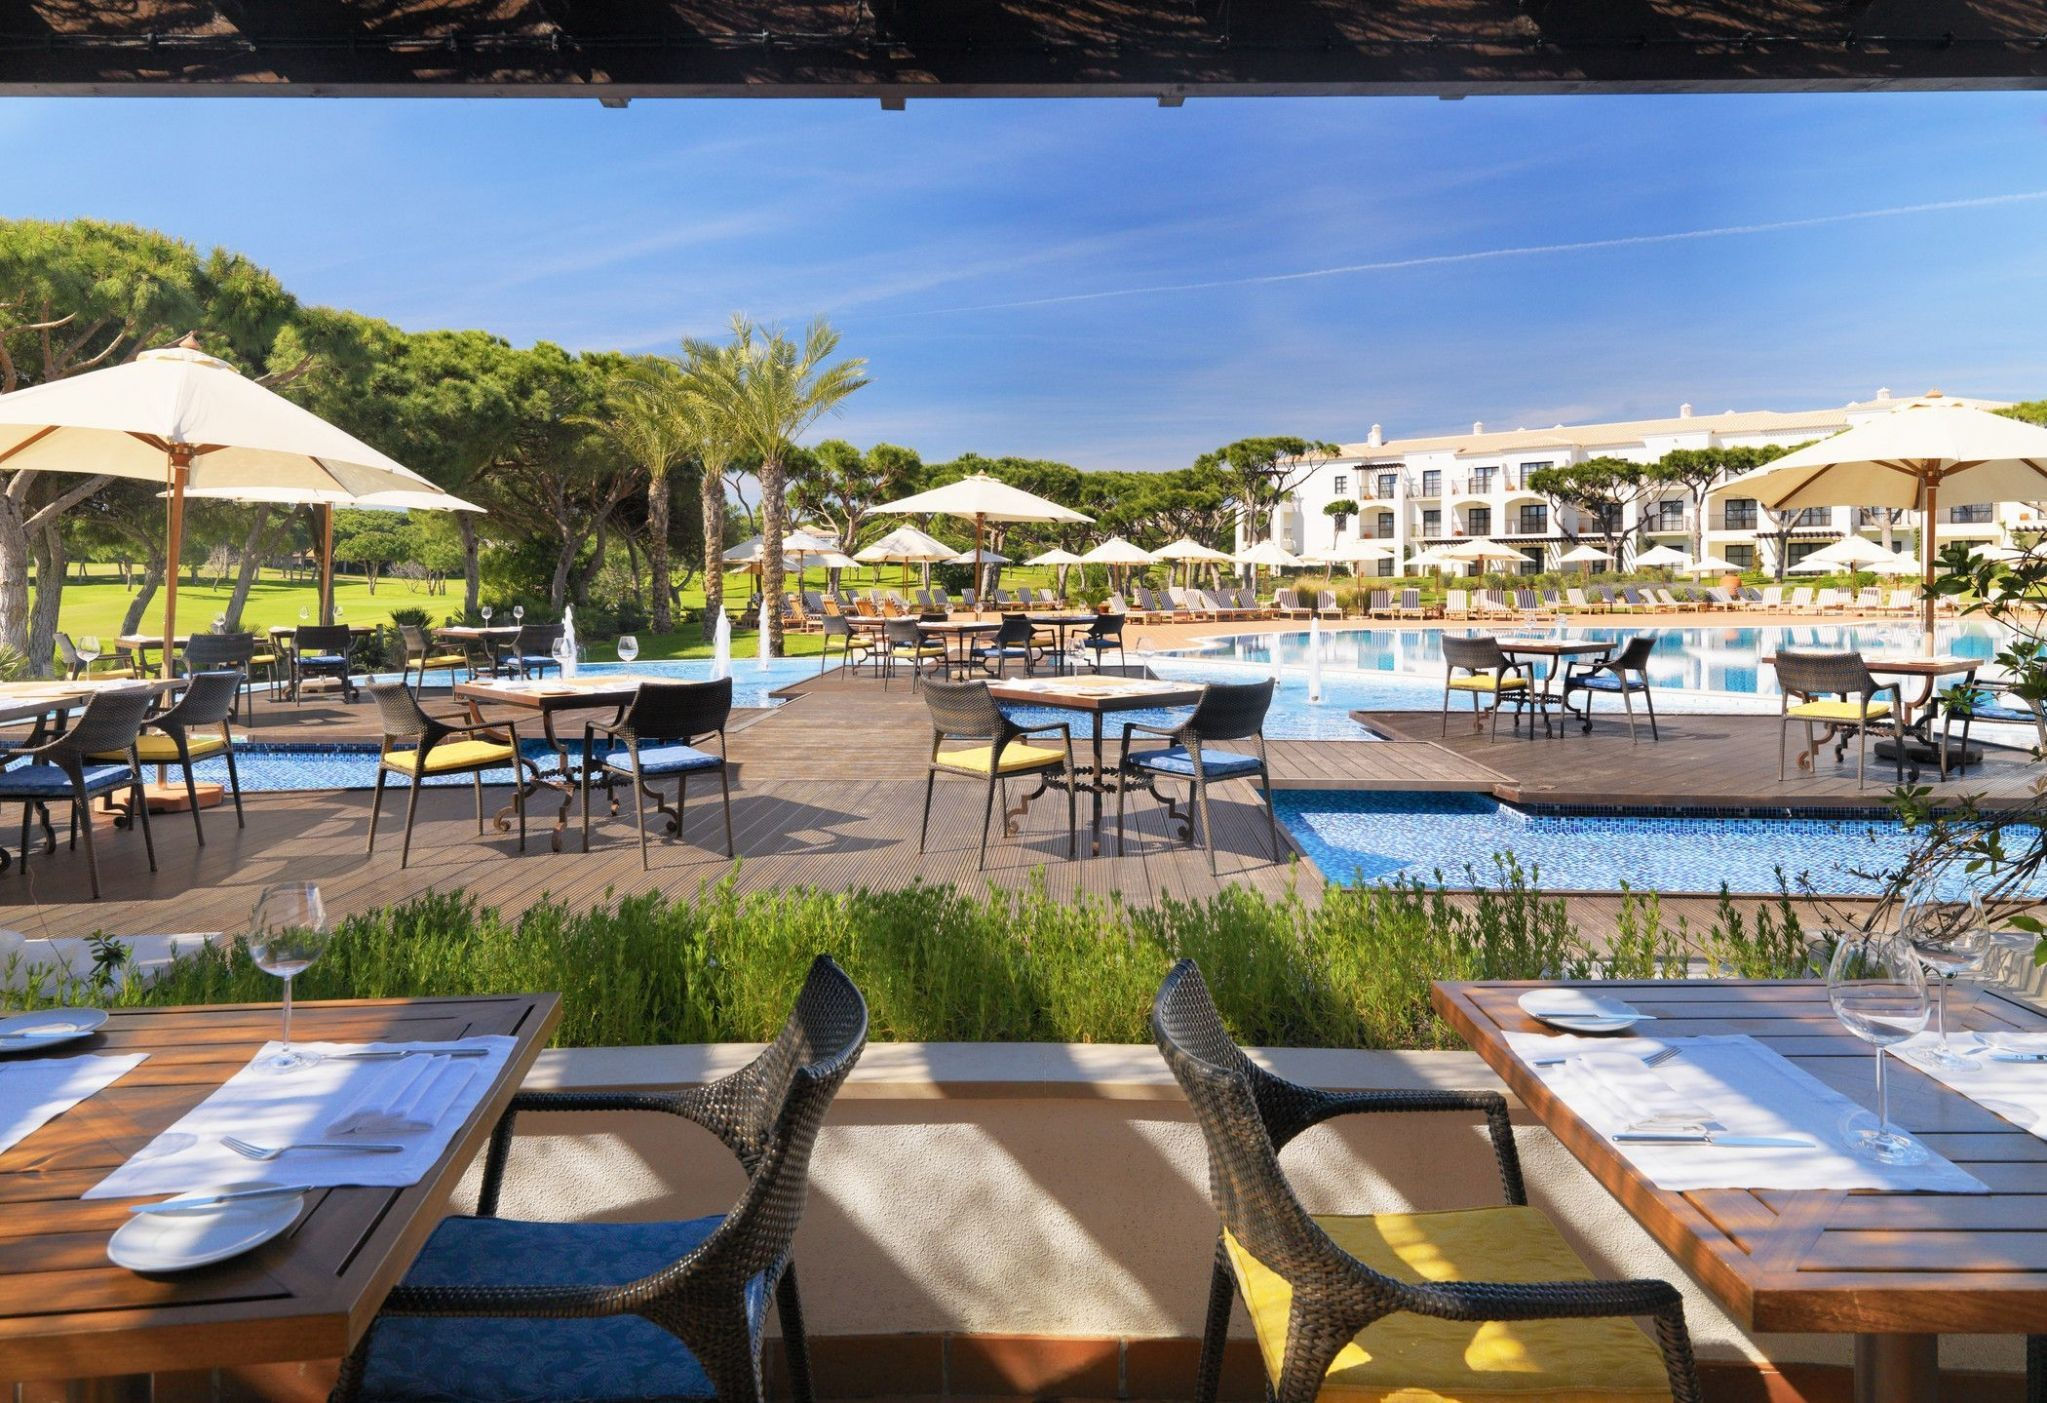 Pine Cliffs Restaurantes e Bars em Albufeira, Algarve